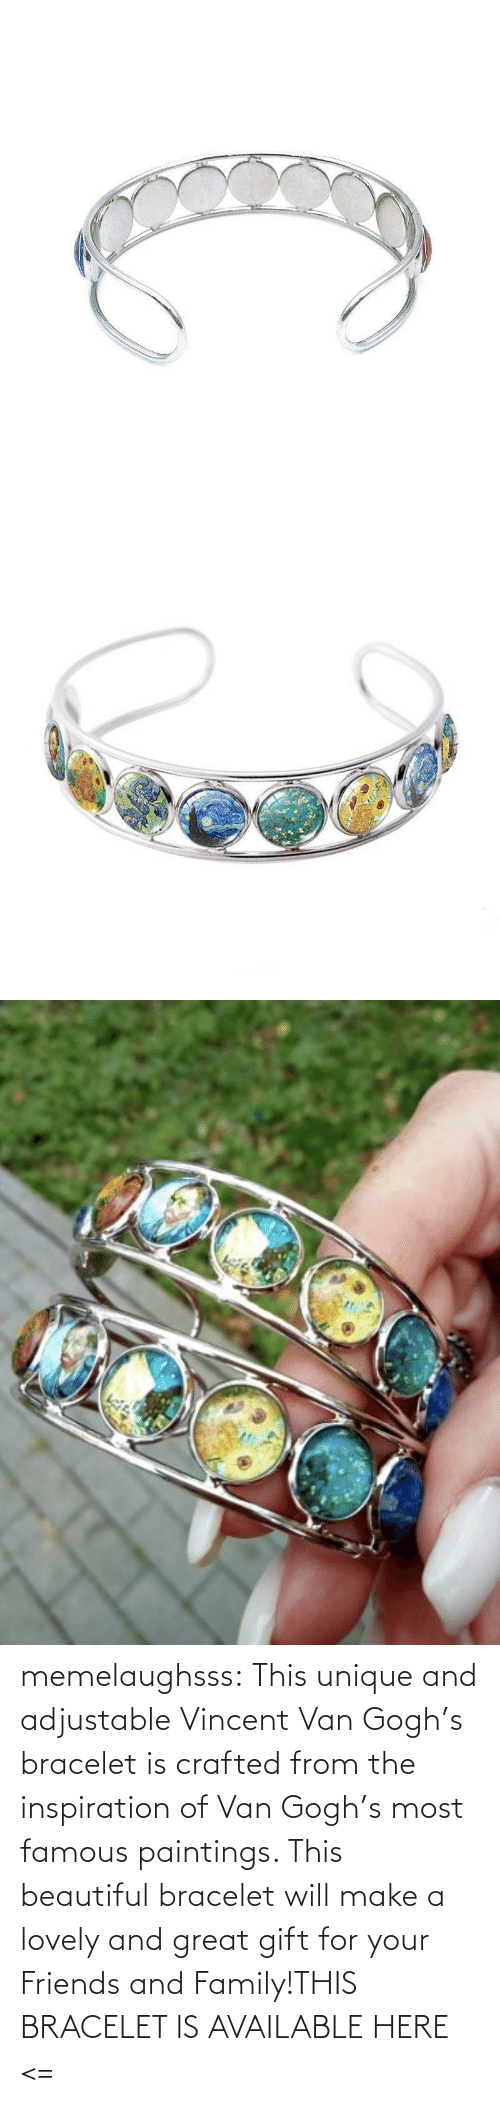 family: memelaughsss:  This unique and adjustable Vincent Van Gogh's bracelet is crafted from the inspiration of Van Gogh's most famous paintings. This beautiful bracelet will make a lovely and great gift for your Friends and Family!THIS BRACELET IS AVAILABLE HERE <=